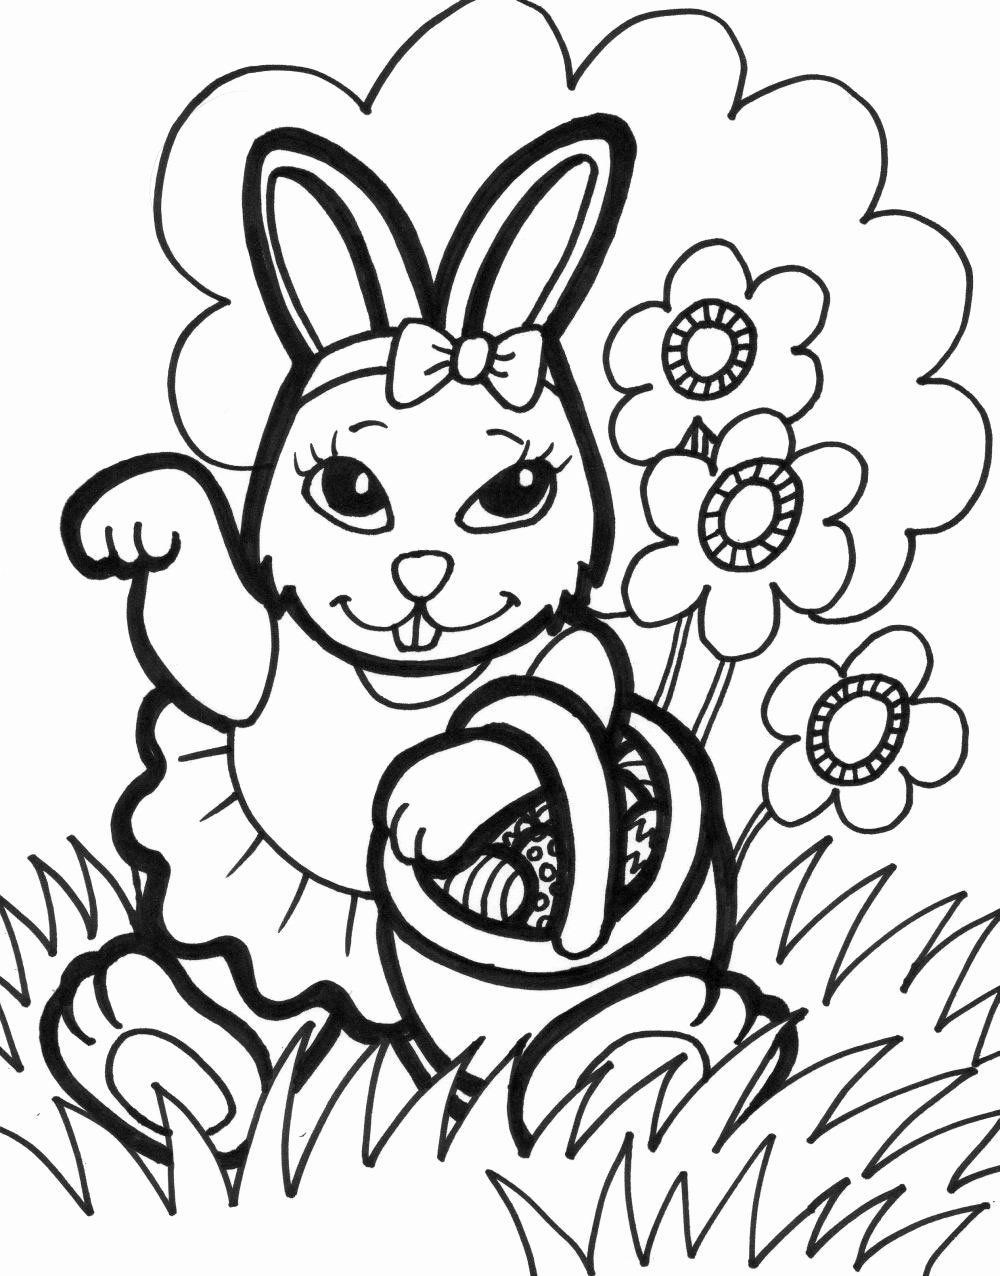 Spring Bunny Coloring Pages Viati Coloring Bunny Coloring Pages Easter Bunny Colouring Animal Coloring Pages